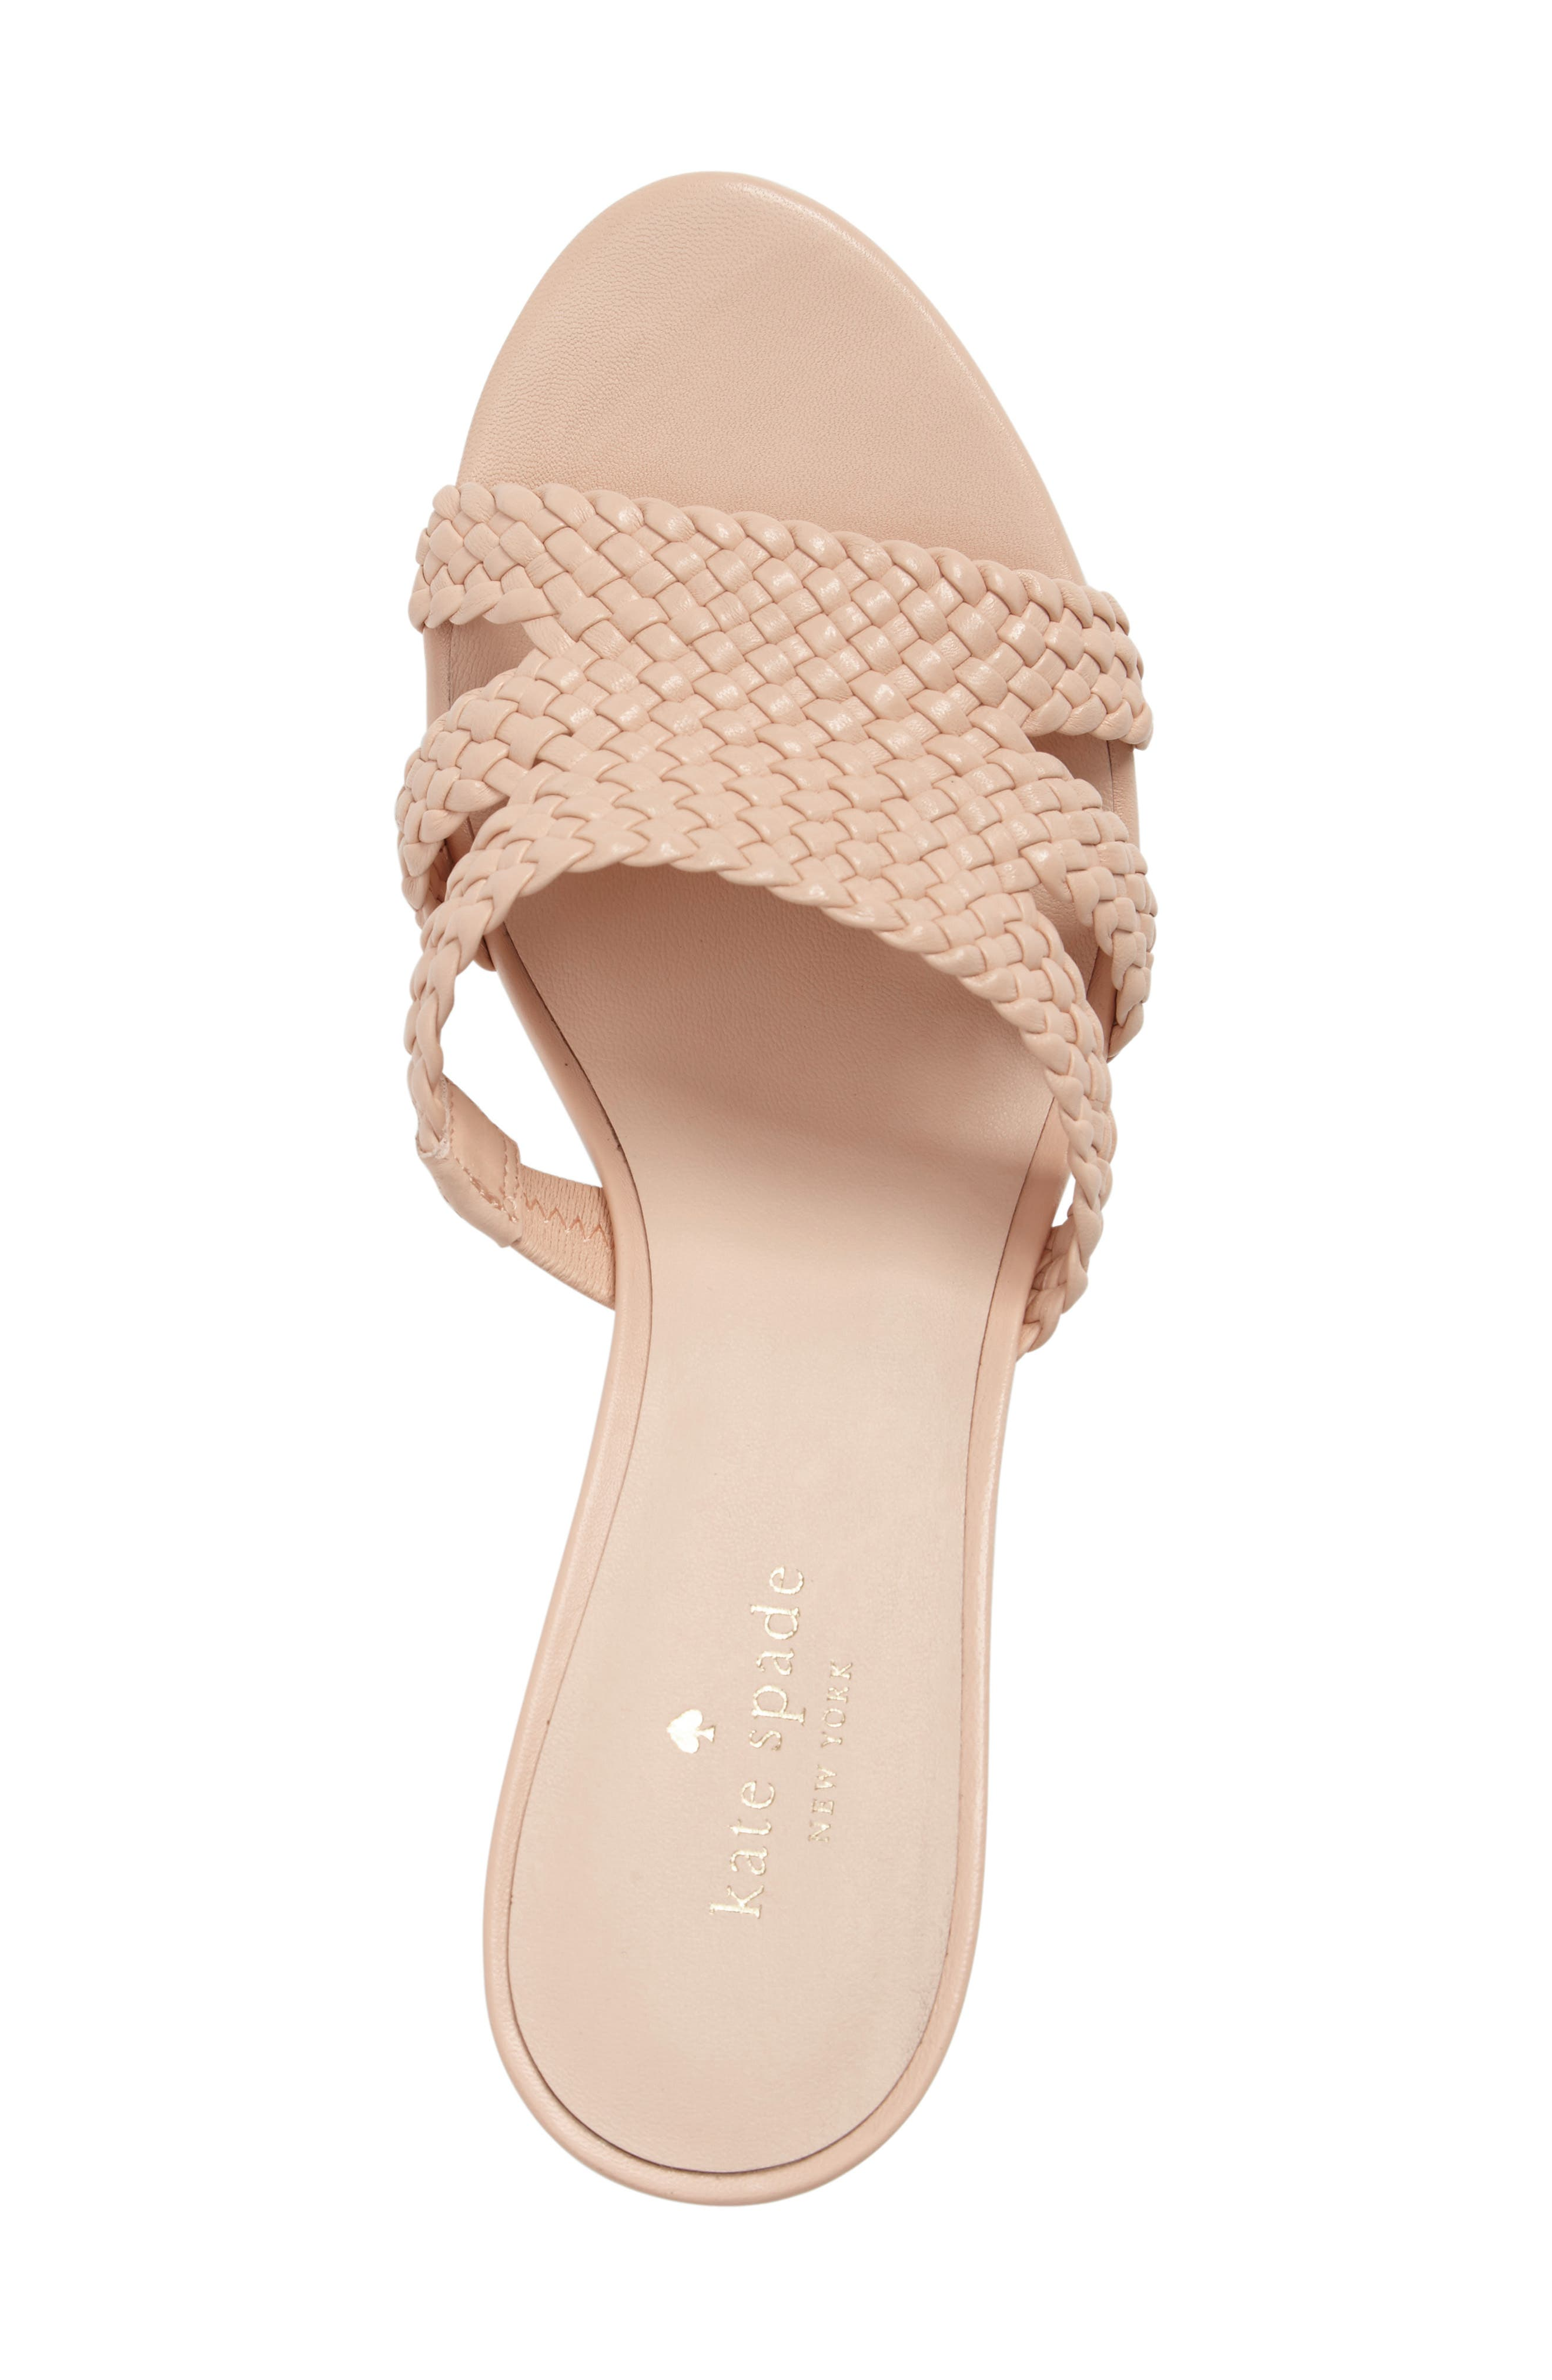 tarvela wedge sandal,                             Alternate thumbnail 5, color,                             661